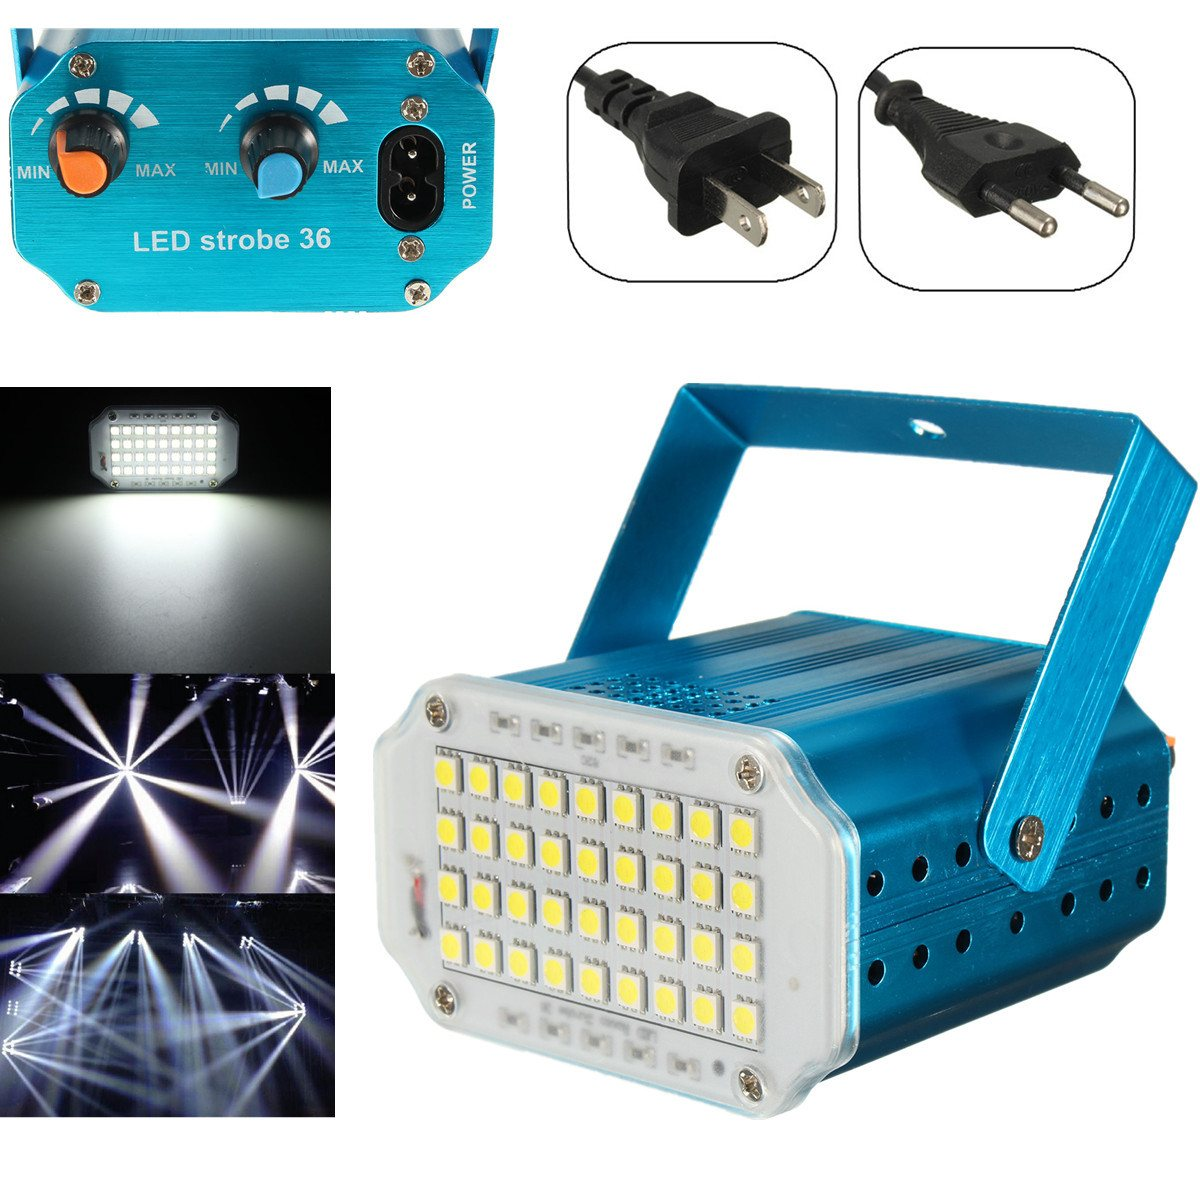 Adjustment LED RGB White Lighting Projector Laser Strobe Stage Light Effect DJ Disco Party Club KTV Night Lamp Bulb US EU Plug ac 110 240v 50 60hz full color rgb laser stage lighting red green blue led dj disco party home wedding club light us